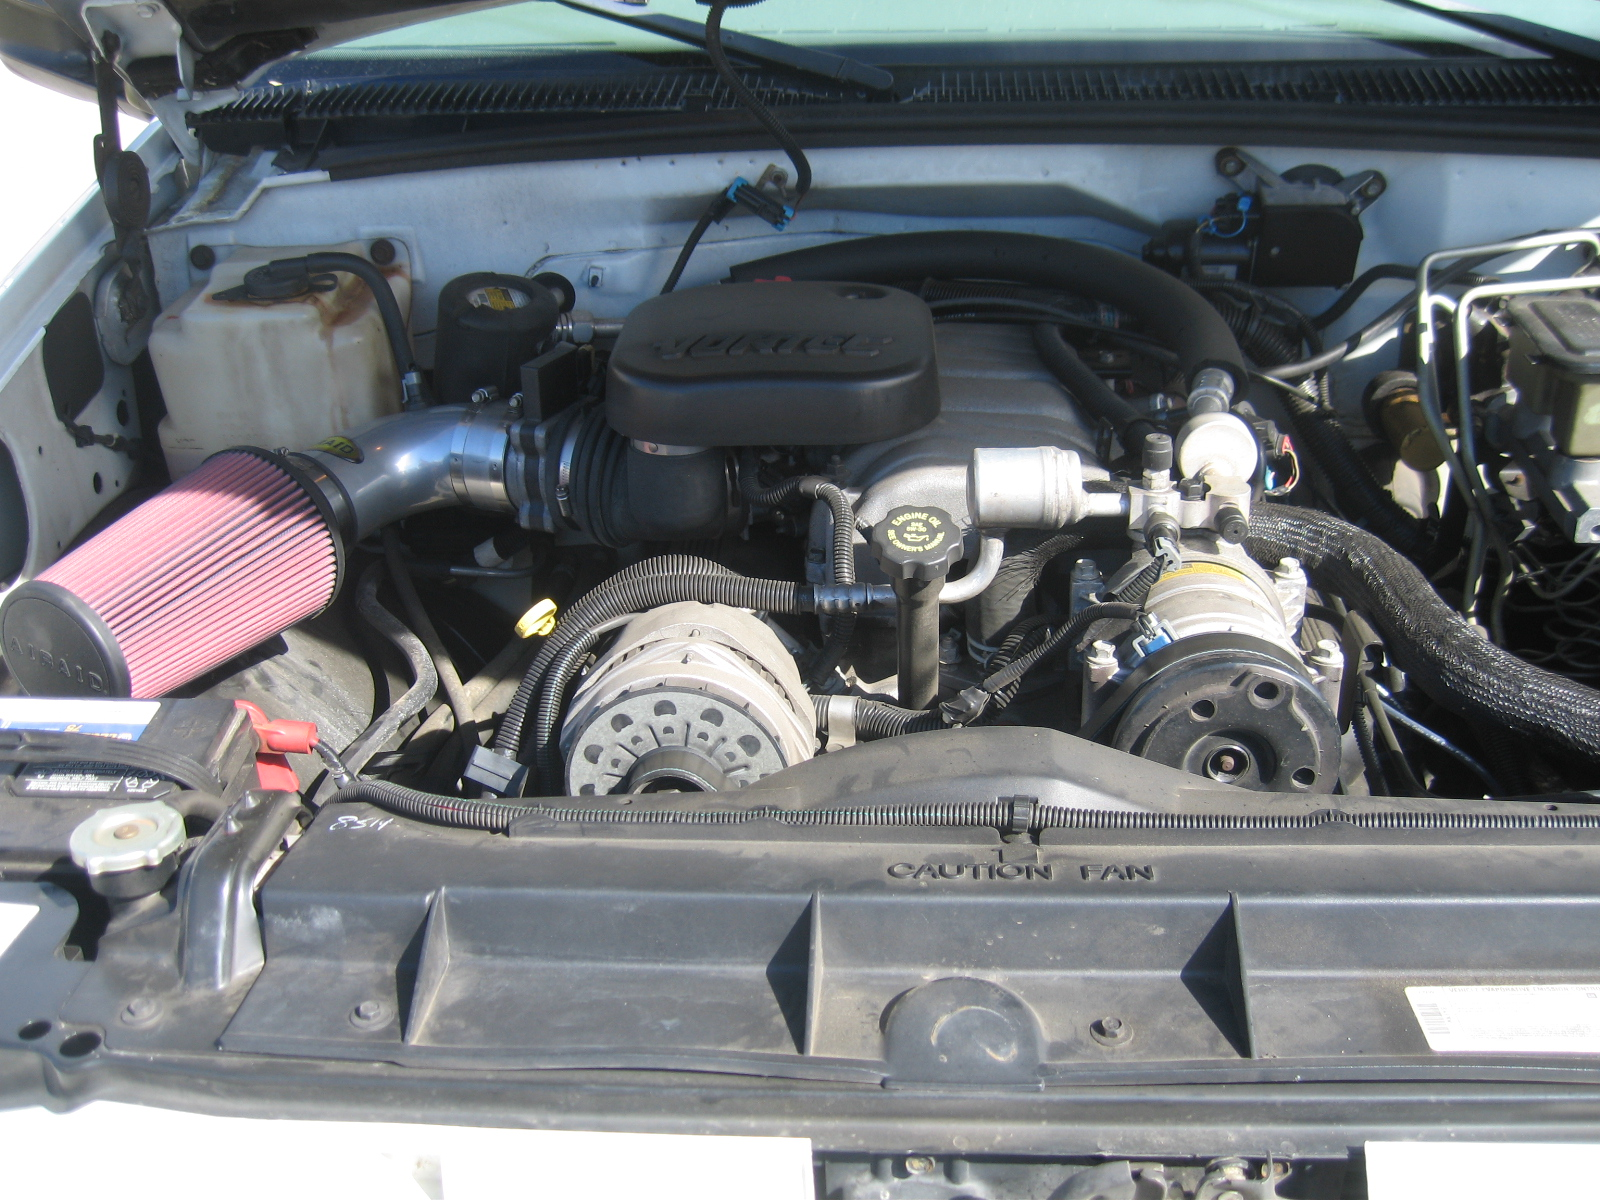 GMC Sierra C3 engine #2